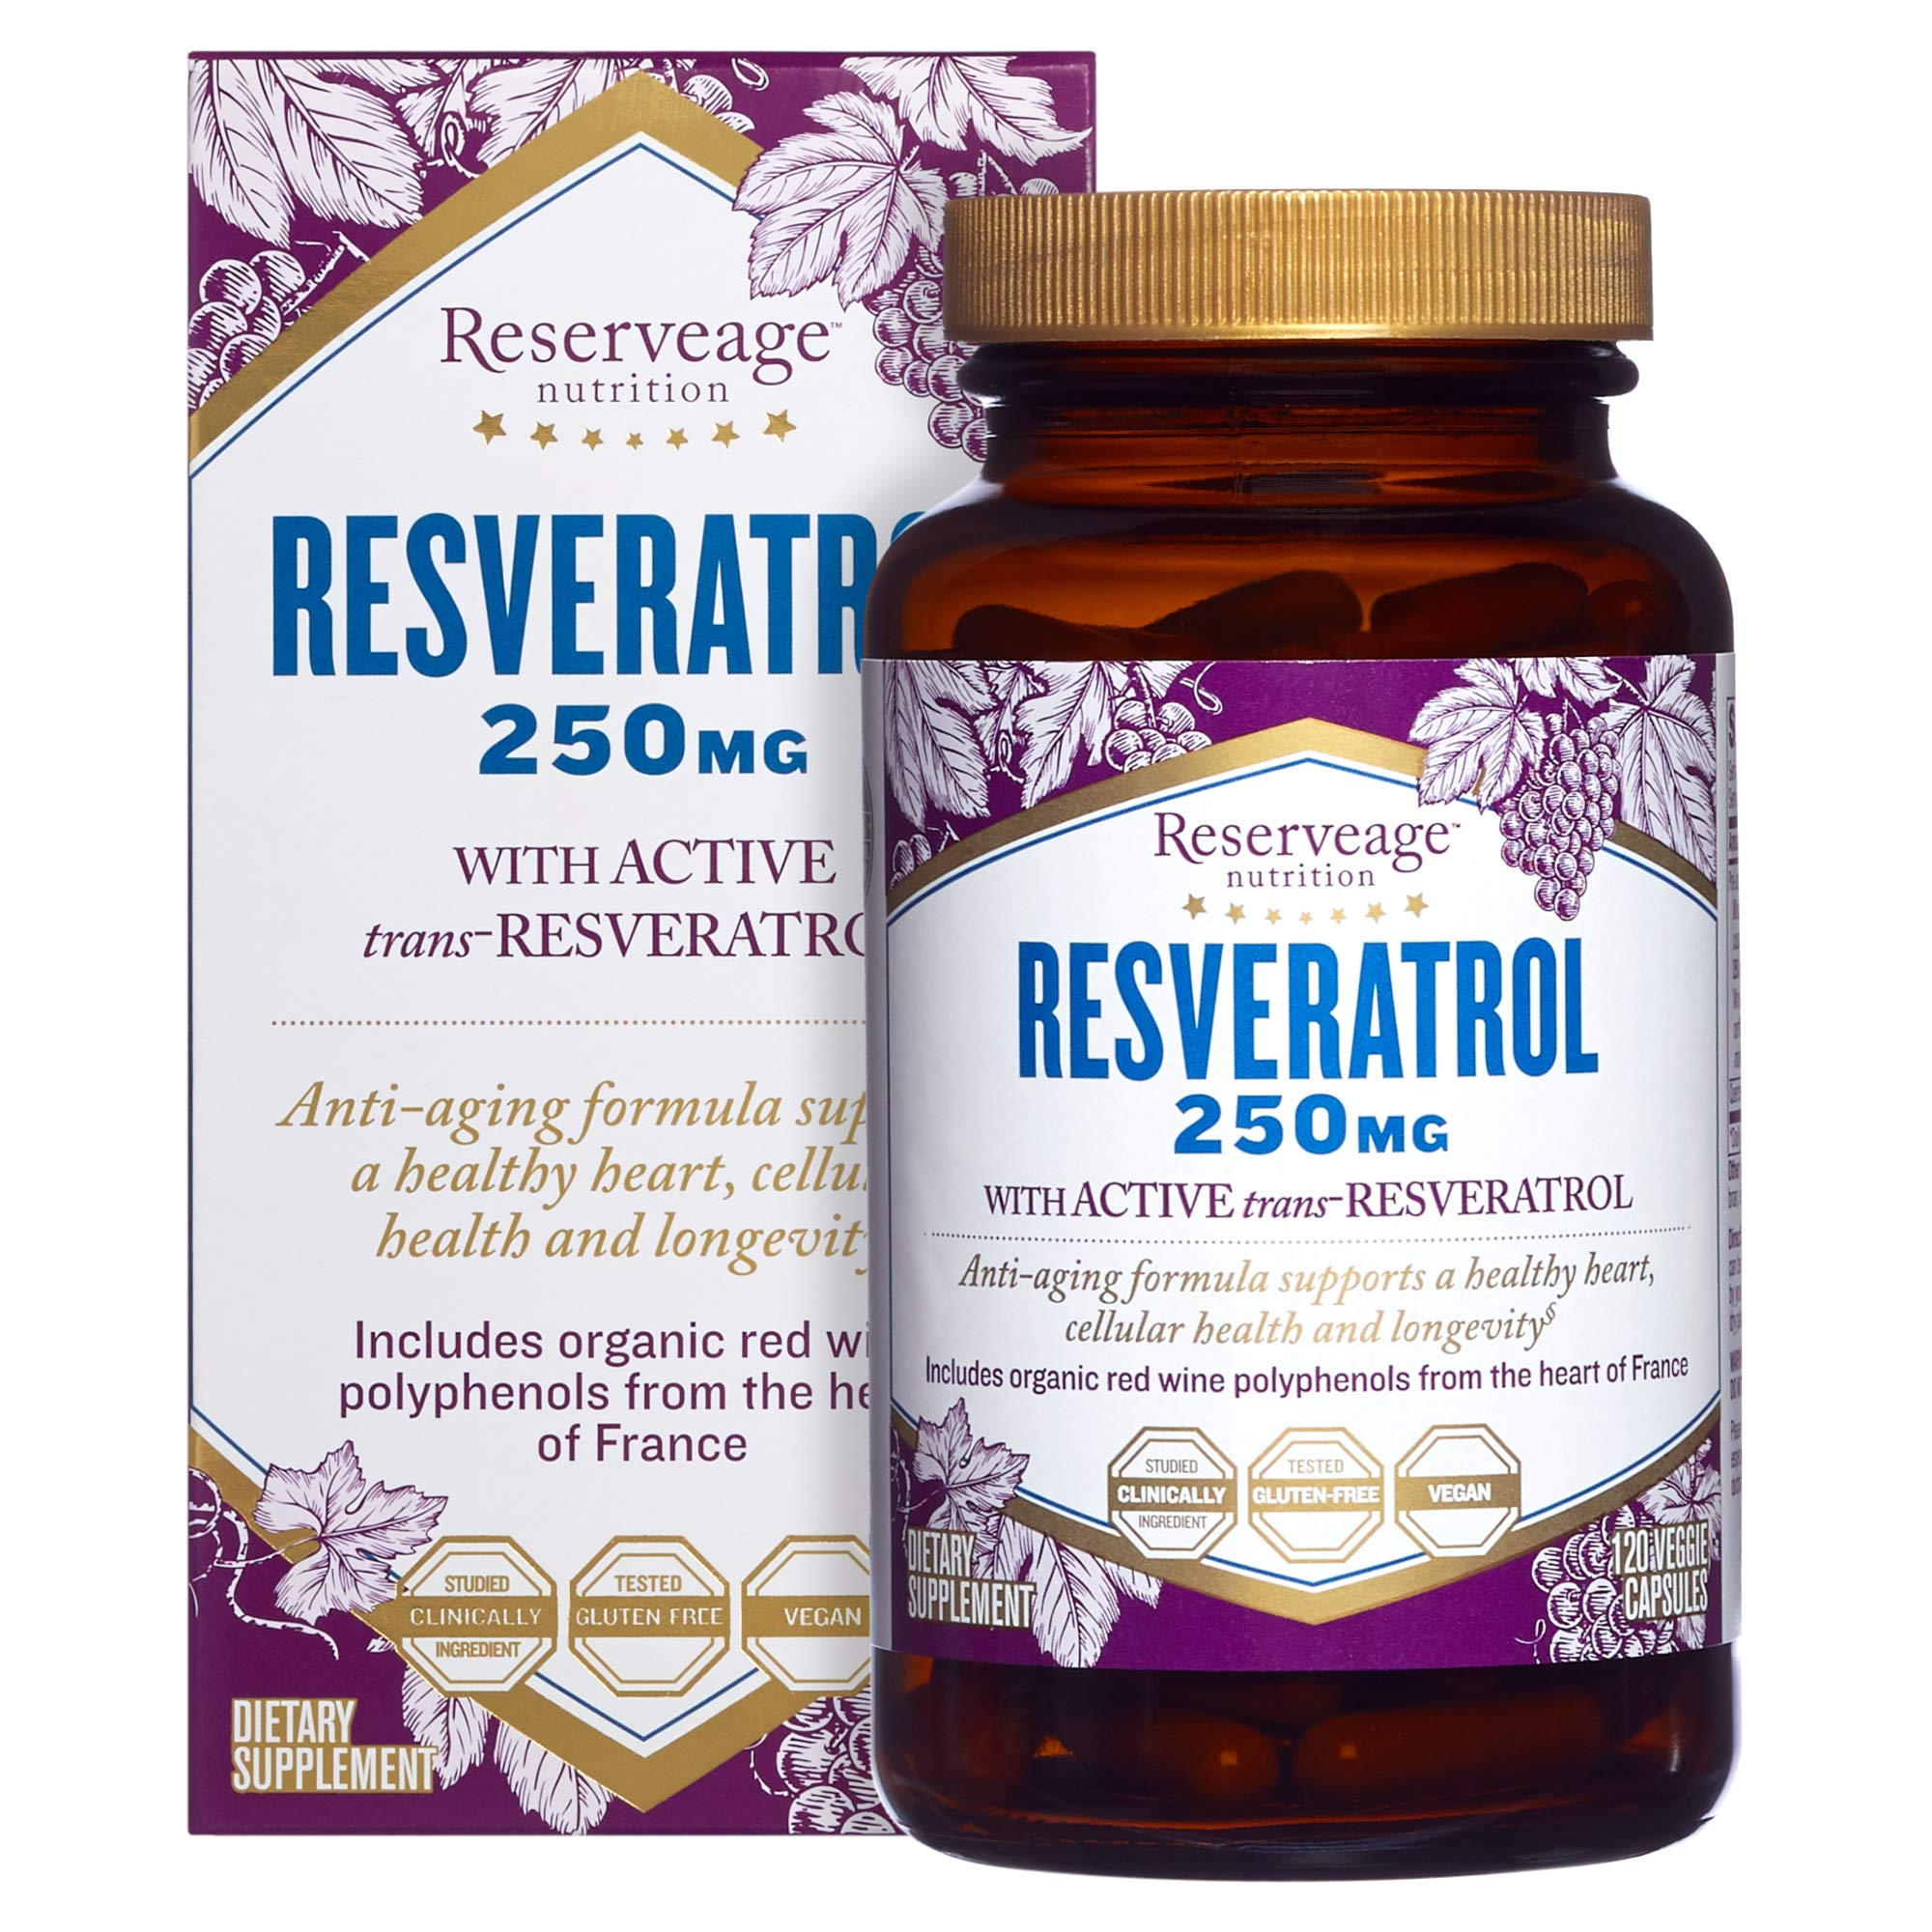 Reserveage, Resveratrol 250 mg, Antioxidant Supplement for Heart and Cellular Health, Supports Healthy Aging, Paleo, Keto, 120 capsules (120 servings) by Reserveage Nutrition